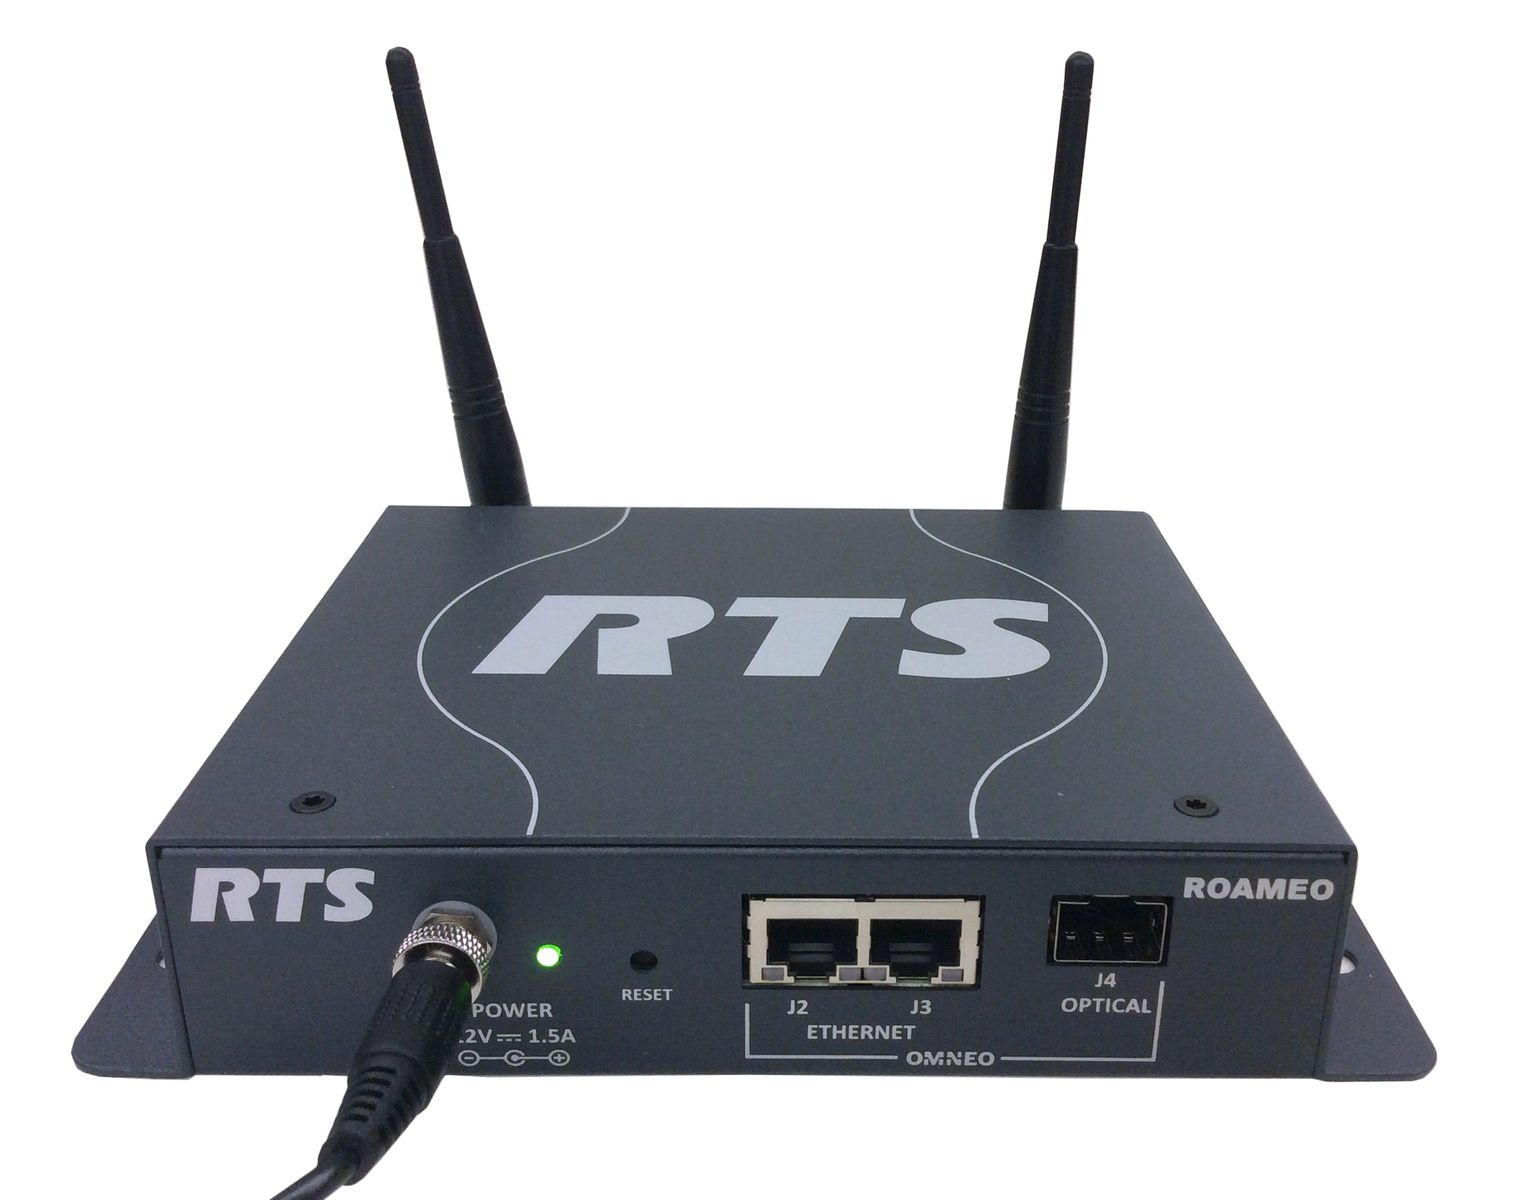 RTS ROAMEO AP-1800 4-Channel DECT-Based Wireless Access Point